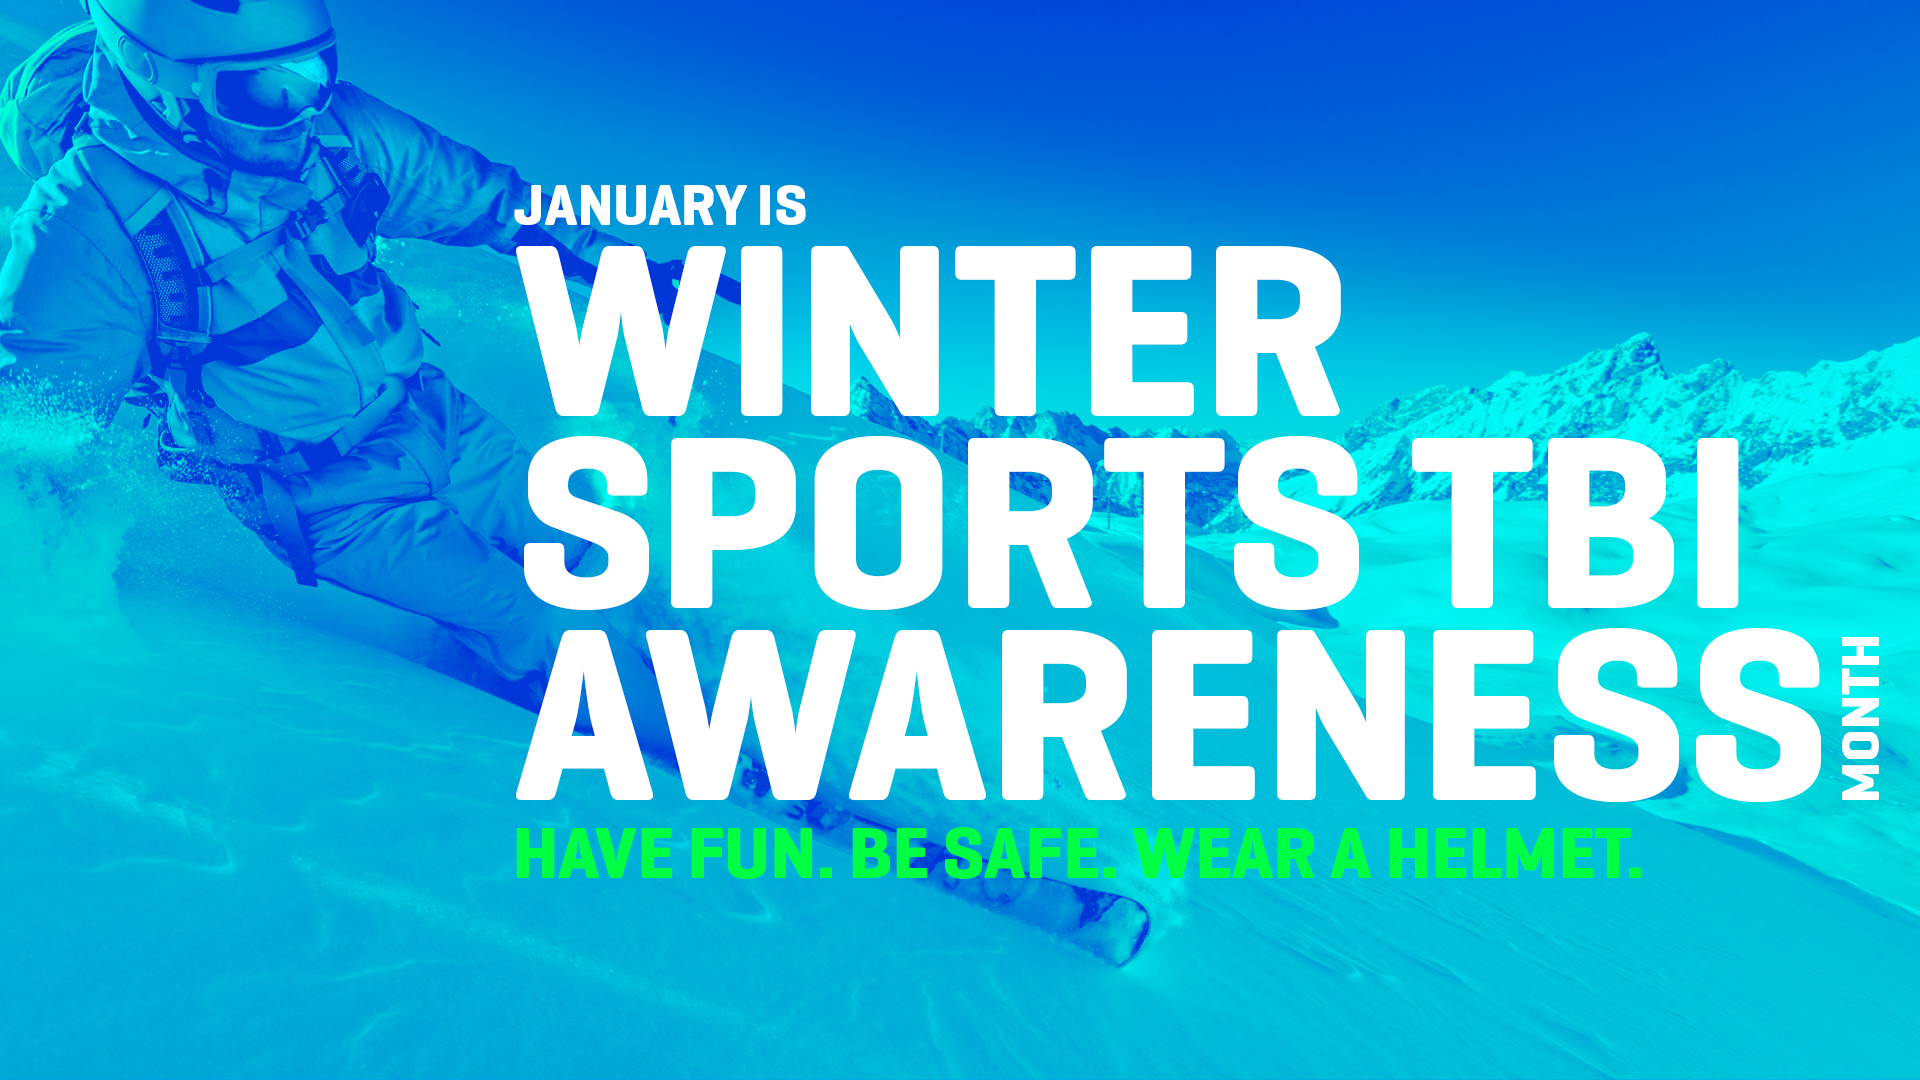 Photo: Person snowboarding Text: January is Winter Sports TBI Awareness Month Have Fun. Be Safe. Wear a Helmet.